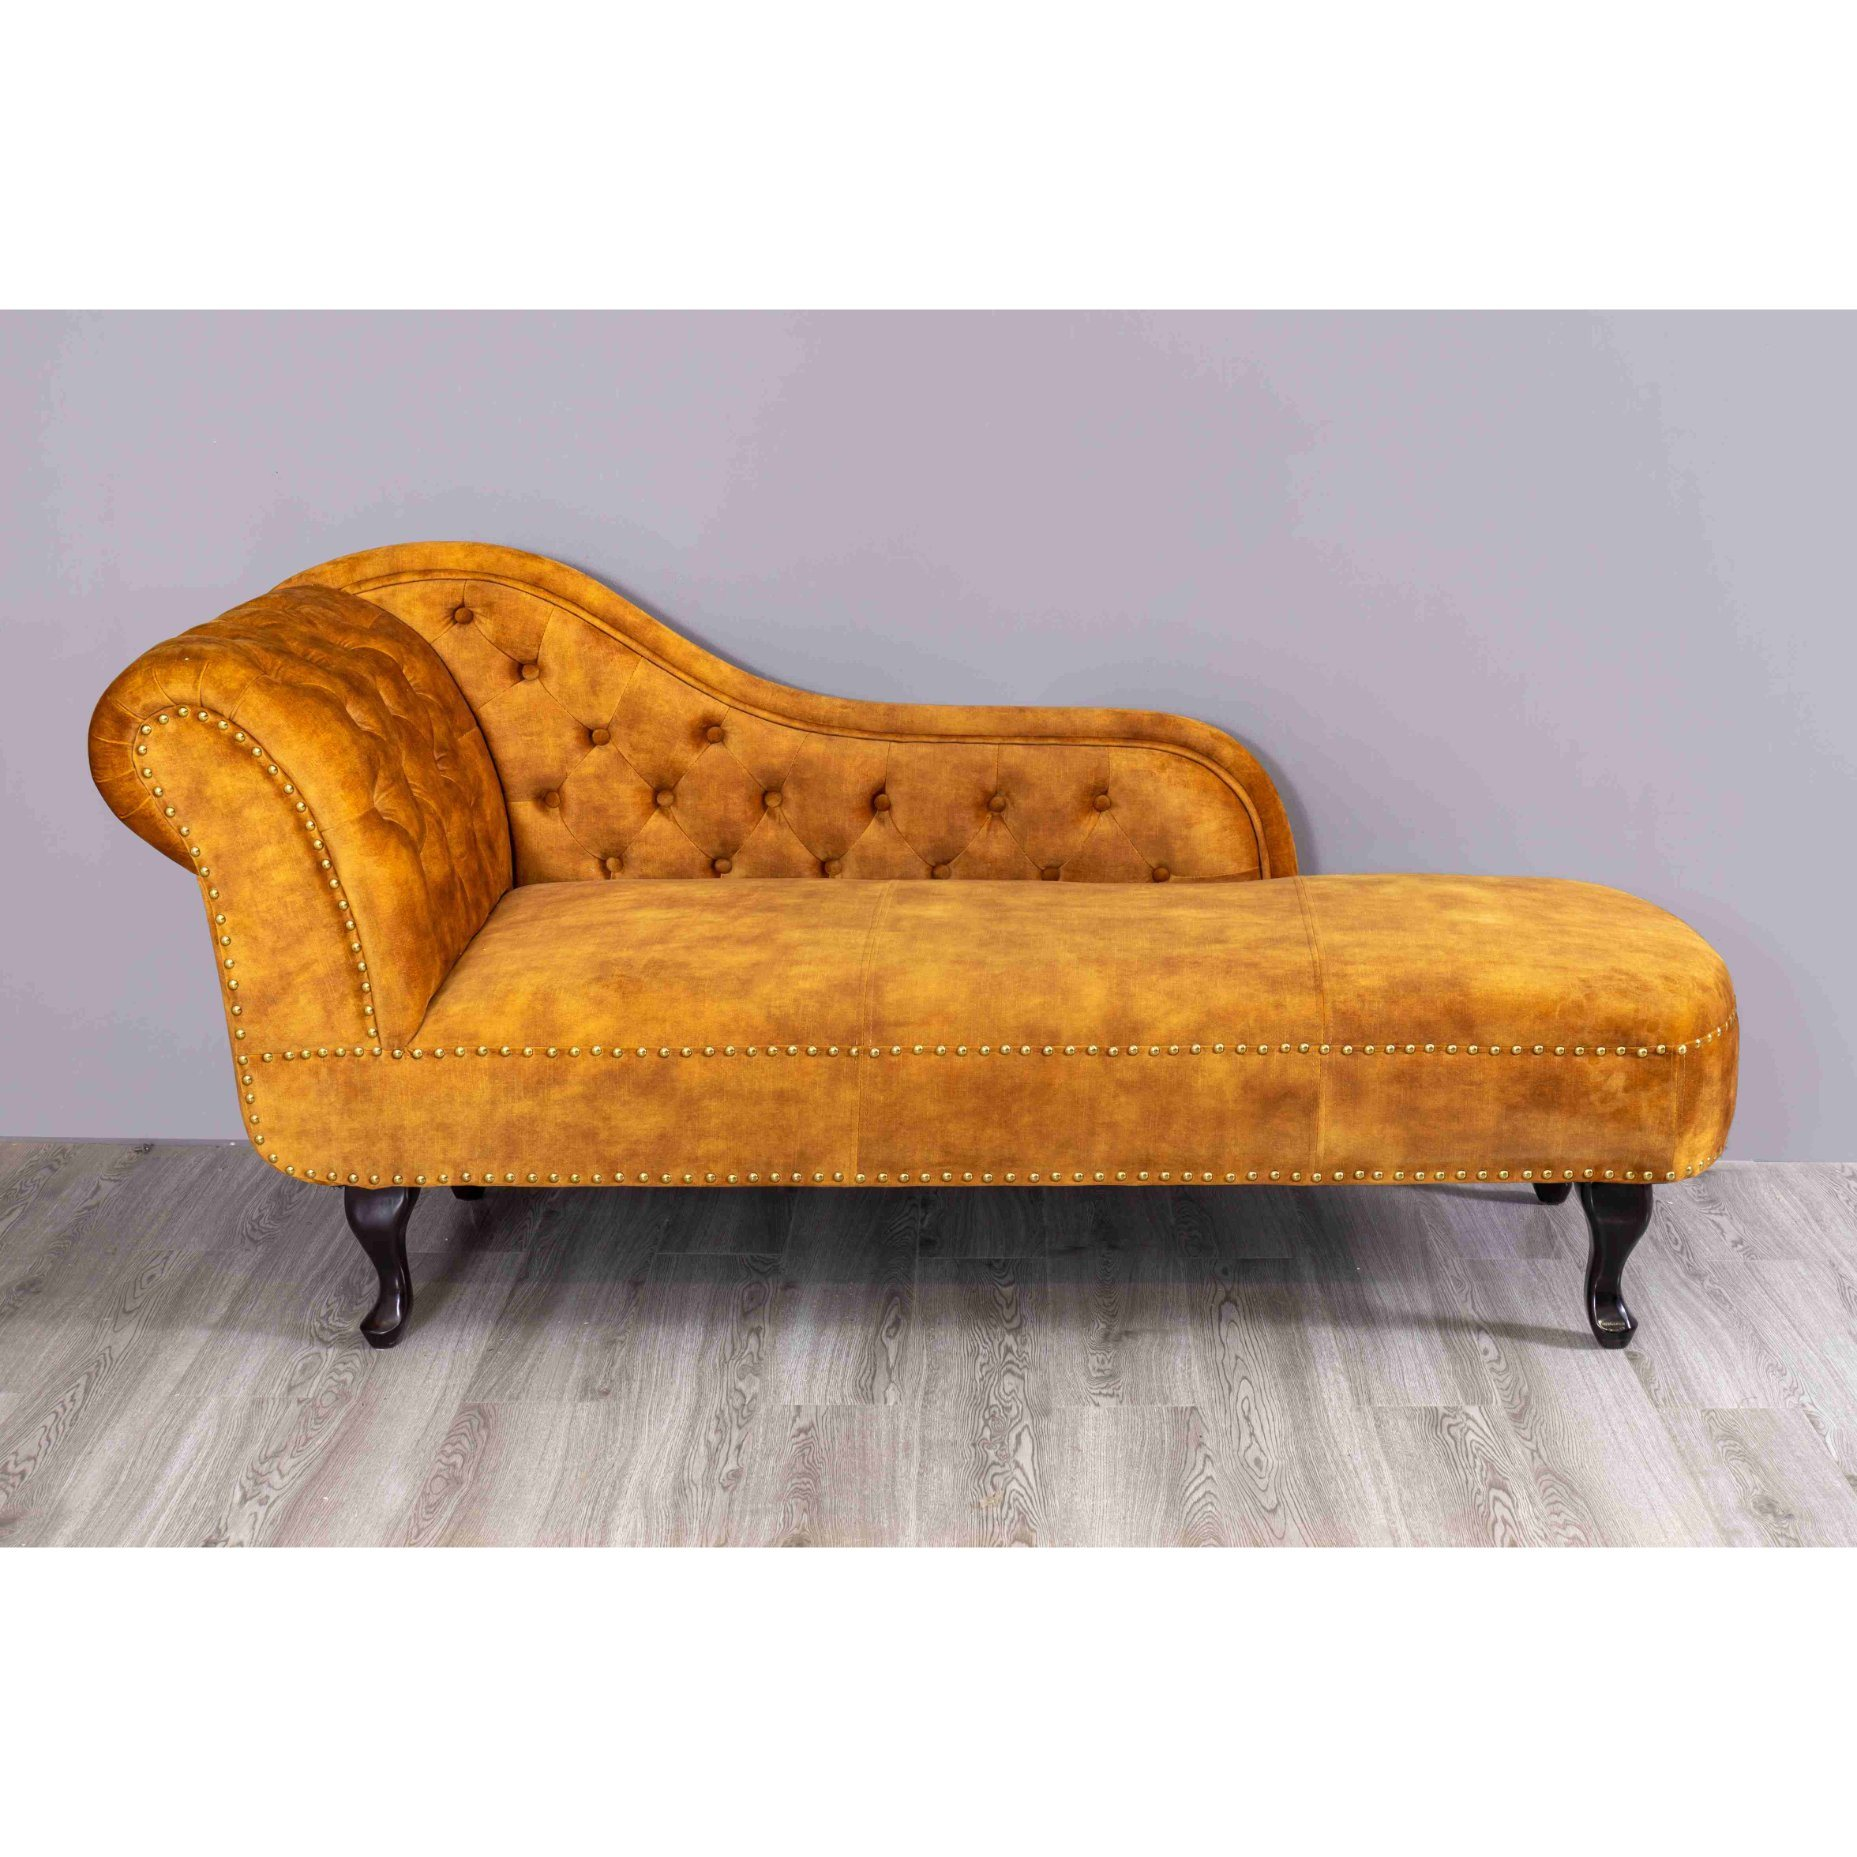 China Armchear Sofa Chaise Longue Outdoor Chair Upholstered Chaise Lounge Chair Furniture China Sofa Living Room Sofa